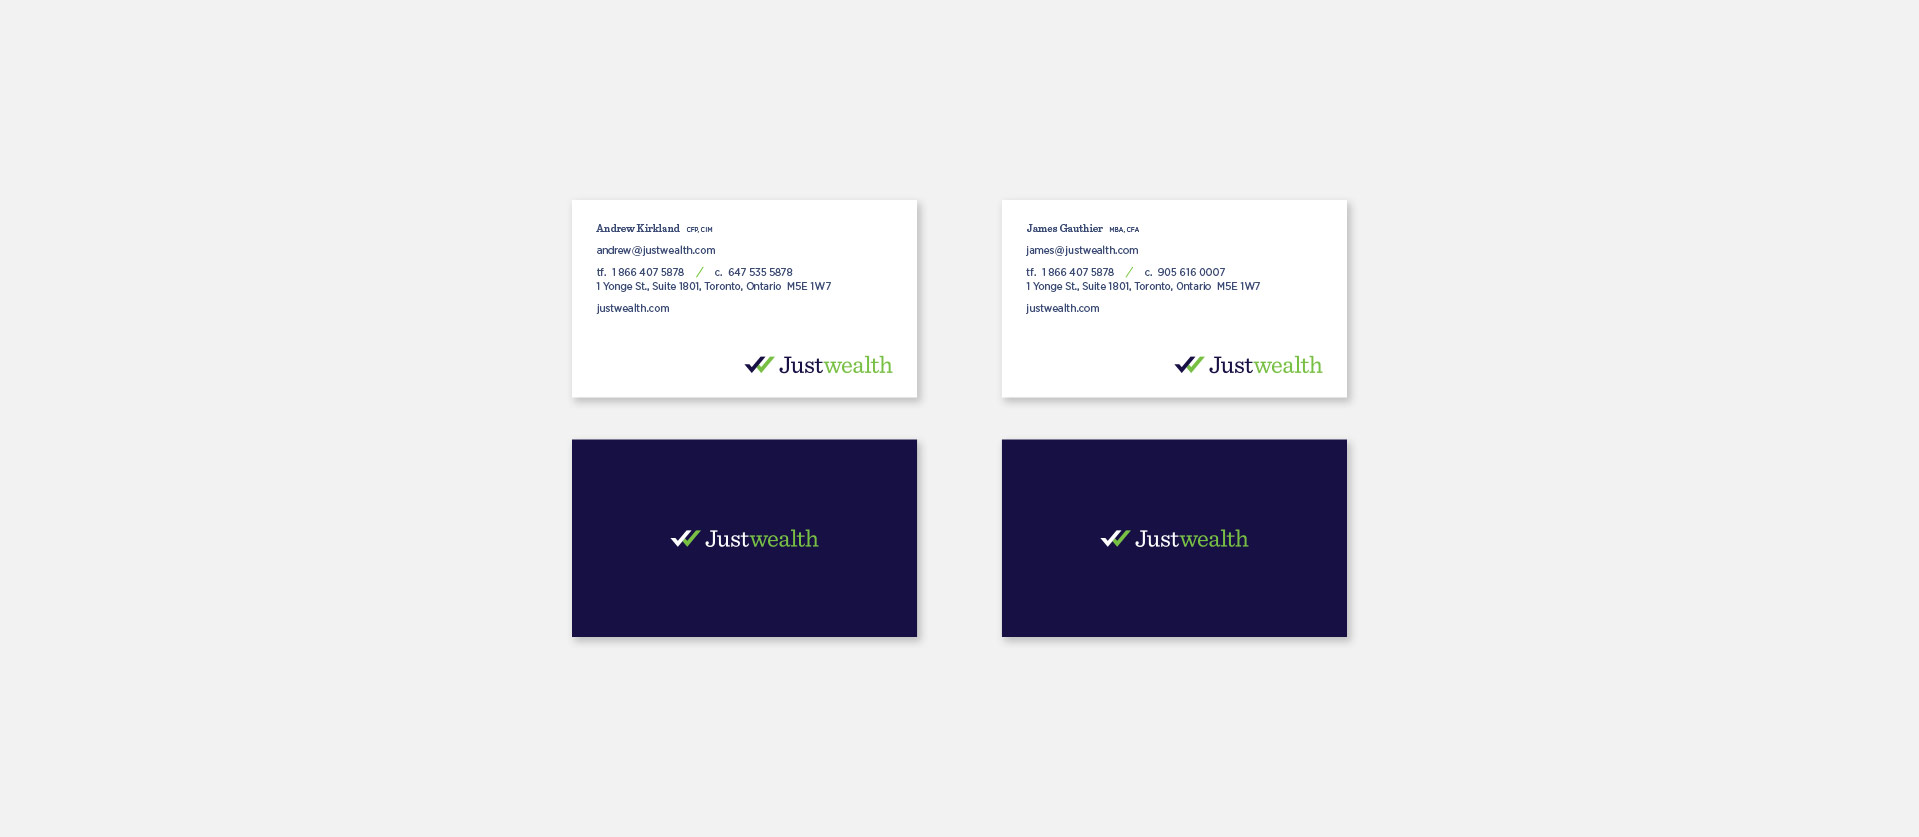 Justwealth Busines Card Design